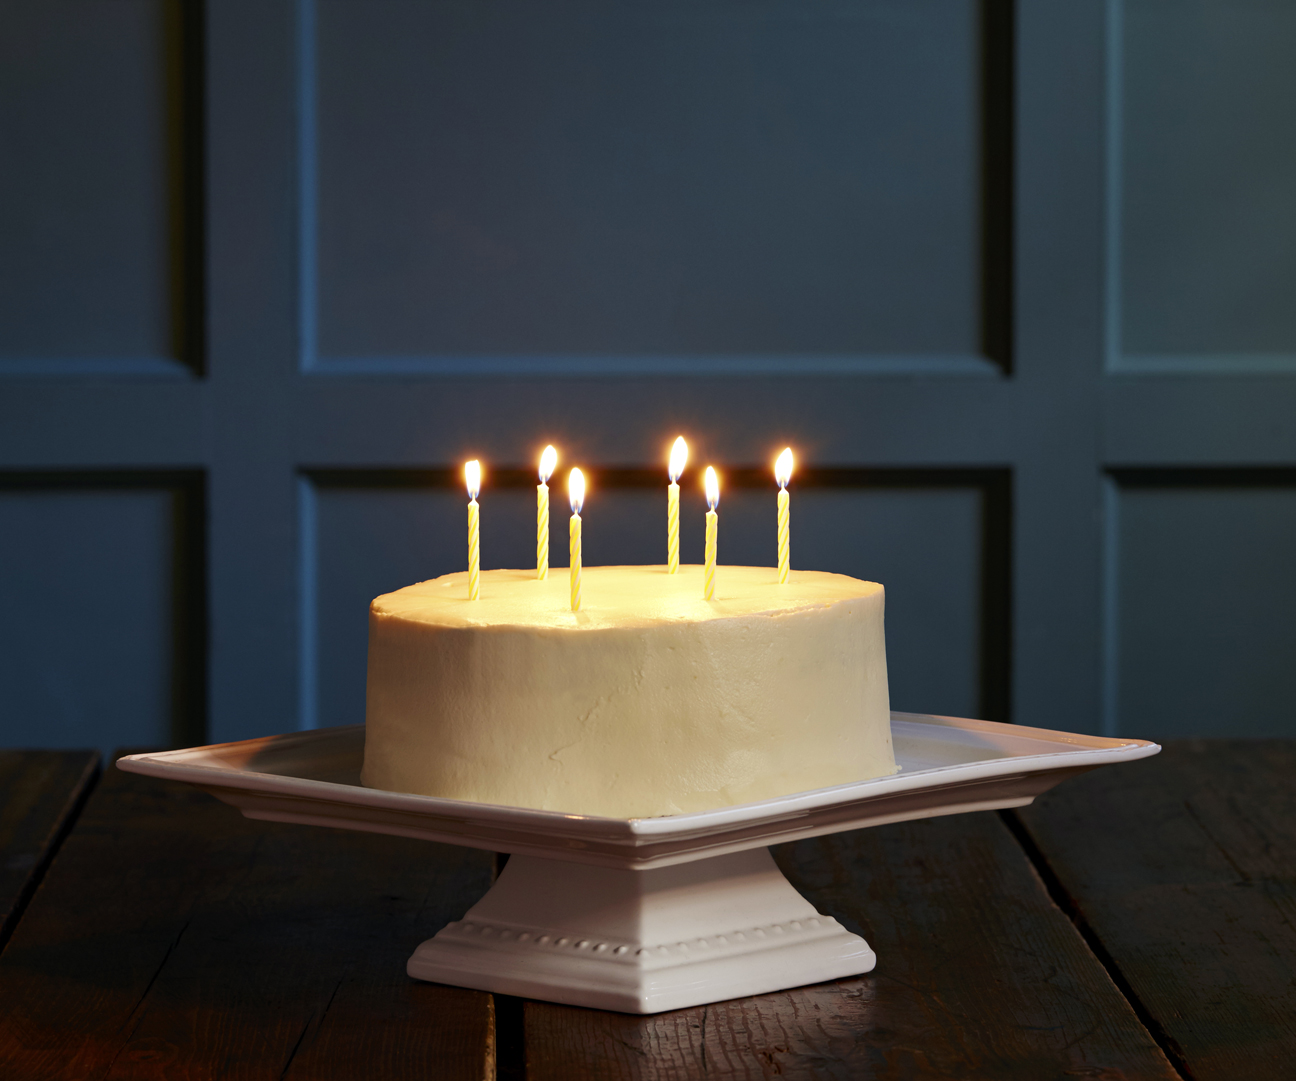 Private Party Menu - Carrot Cake with Cream Cheese Frosting     Photo Download